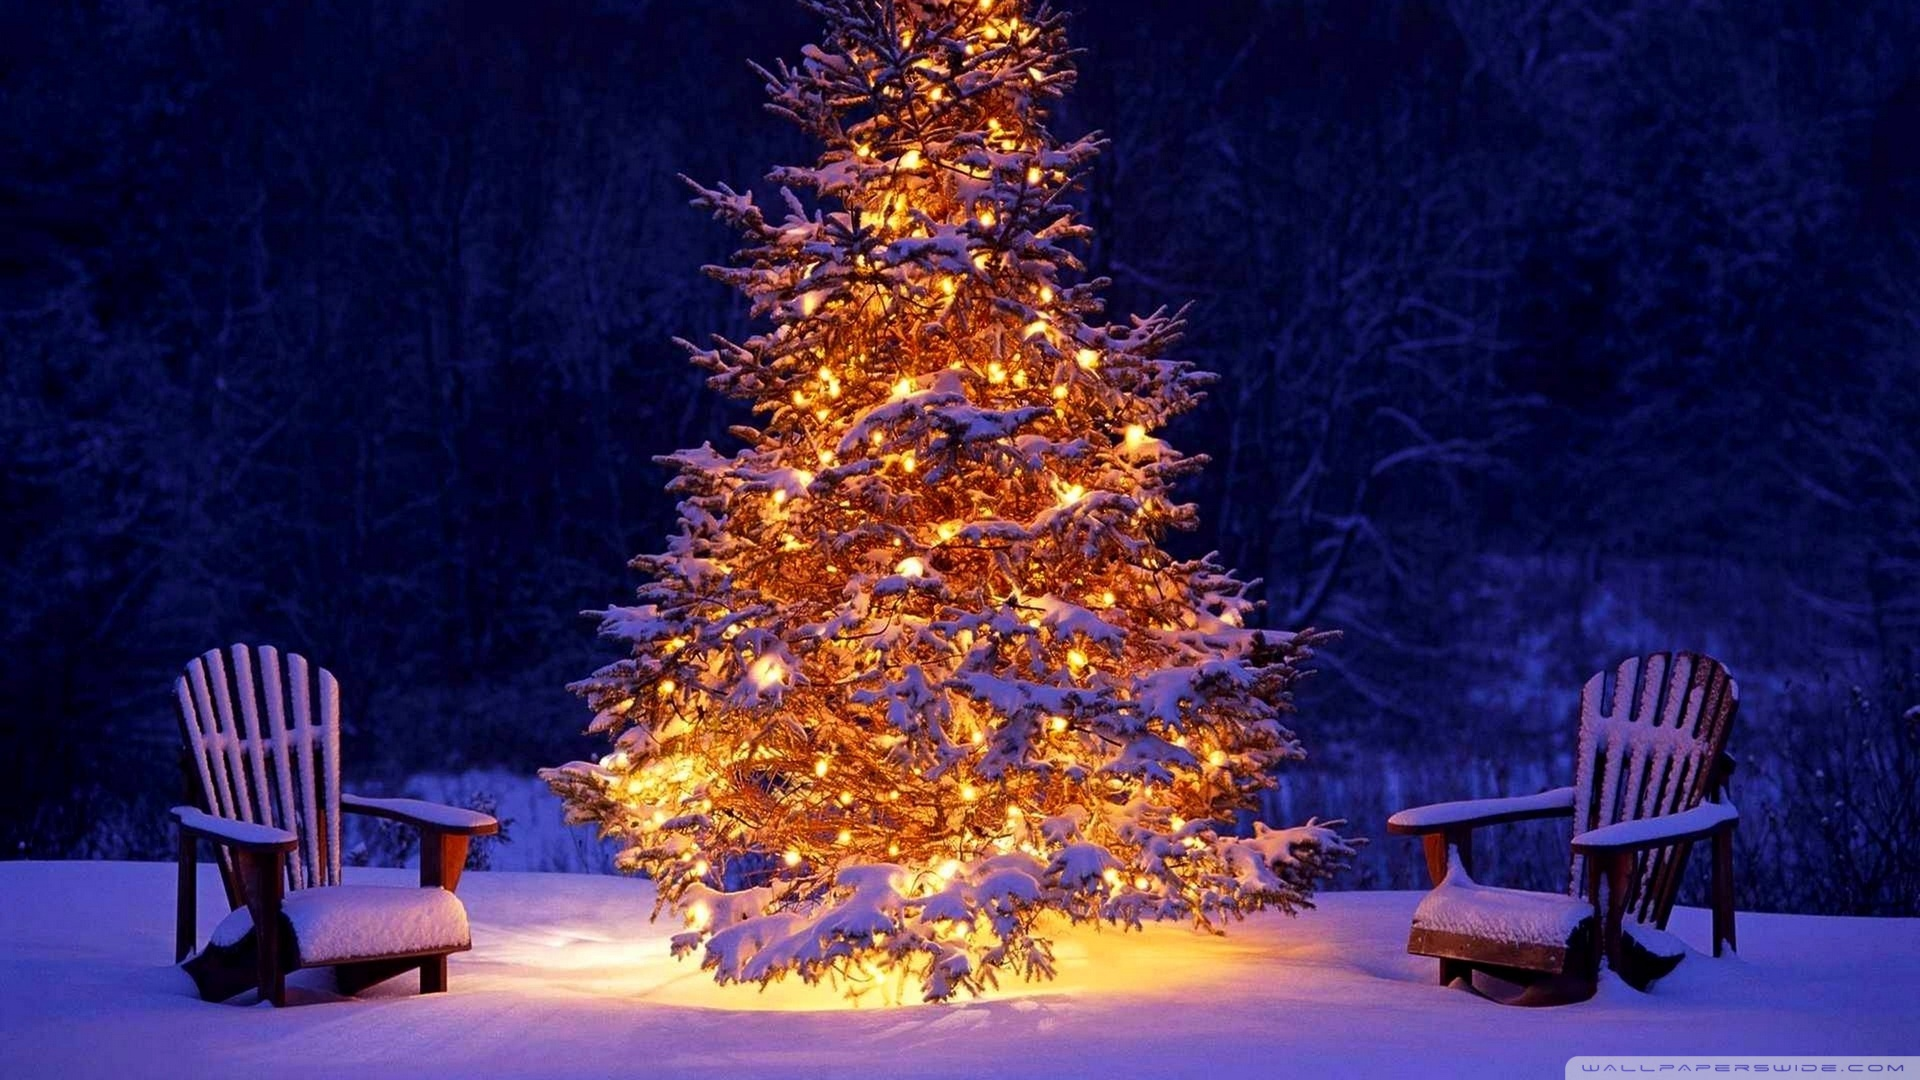 christmas outdoor decorations wallpaper 1920x1080